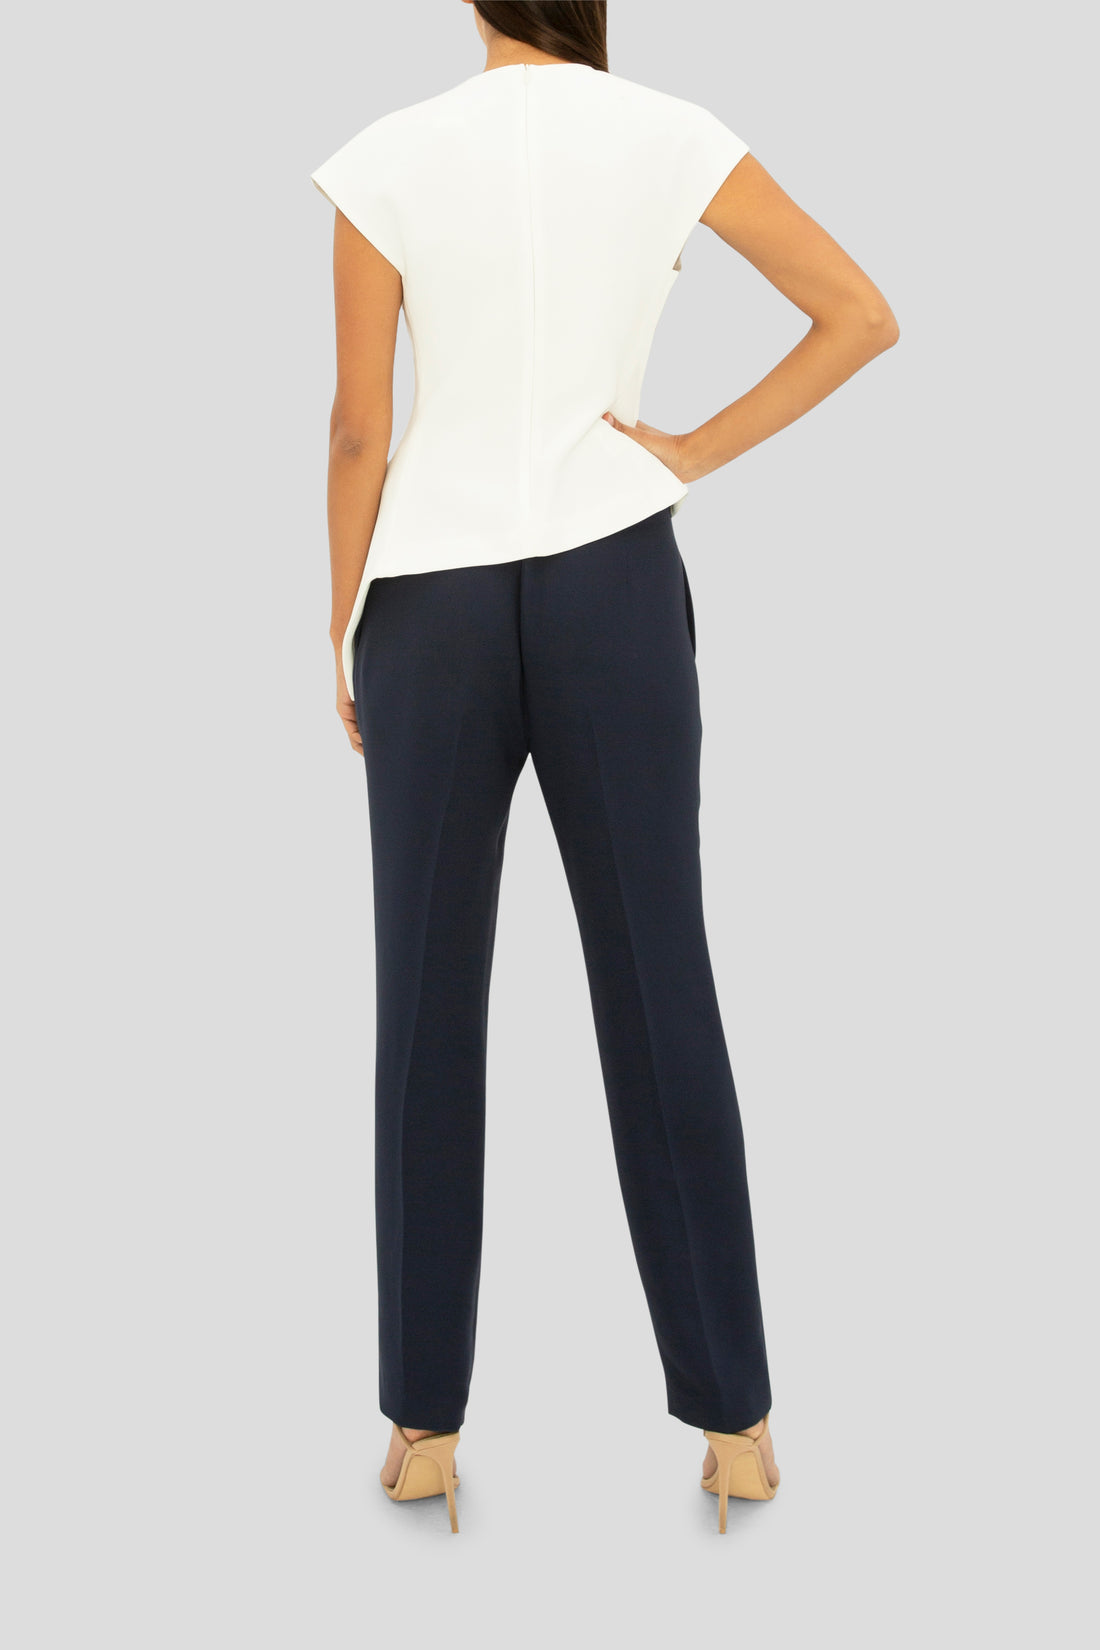 THE NAVY DESIRE SLIM PANT